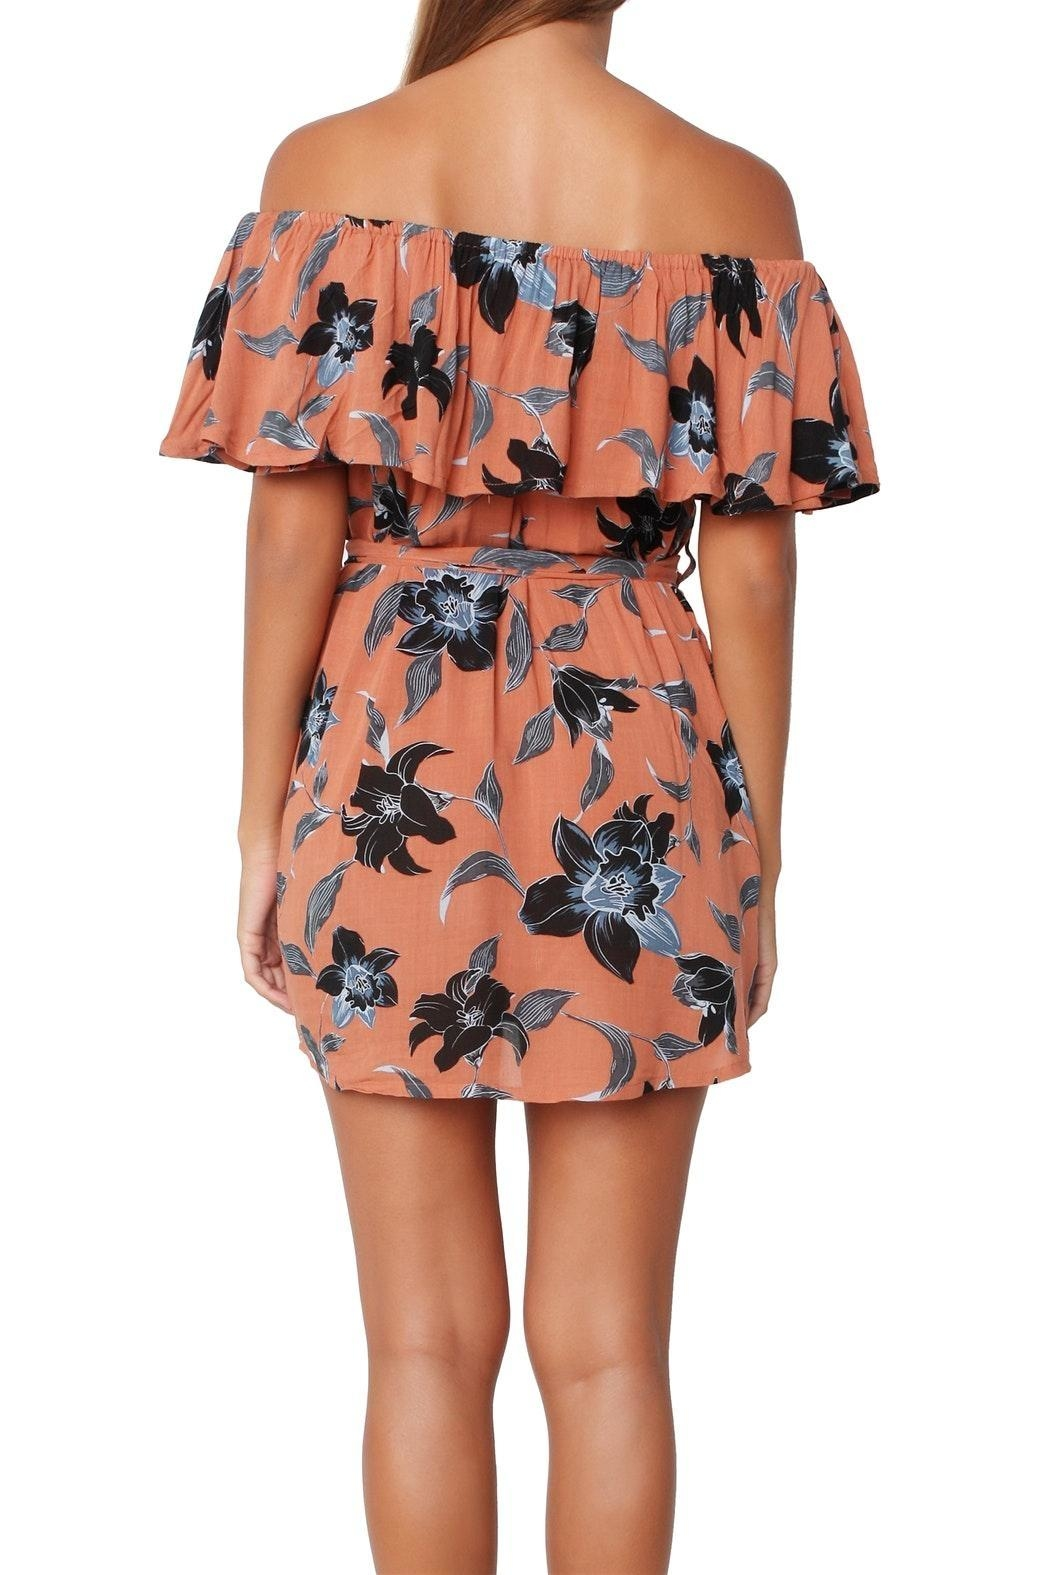 Faithfull The Brand Maldives Floral Dress - Front Full Image